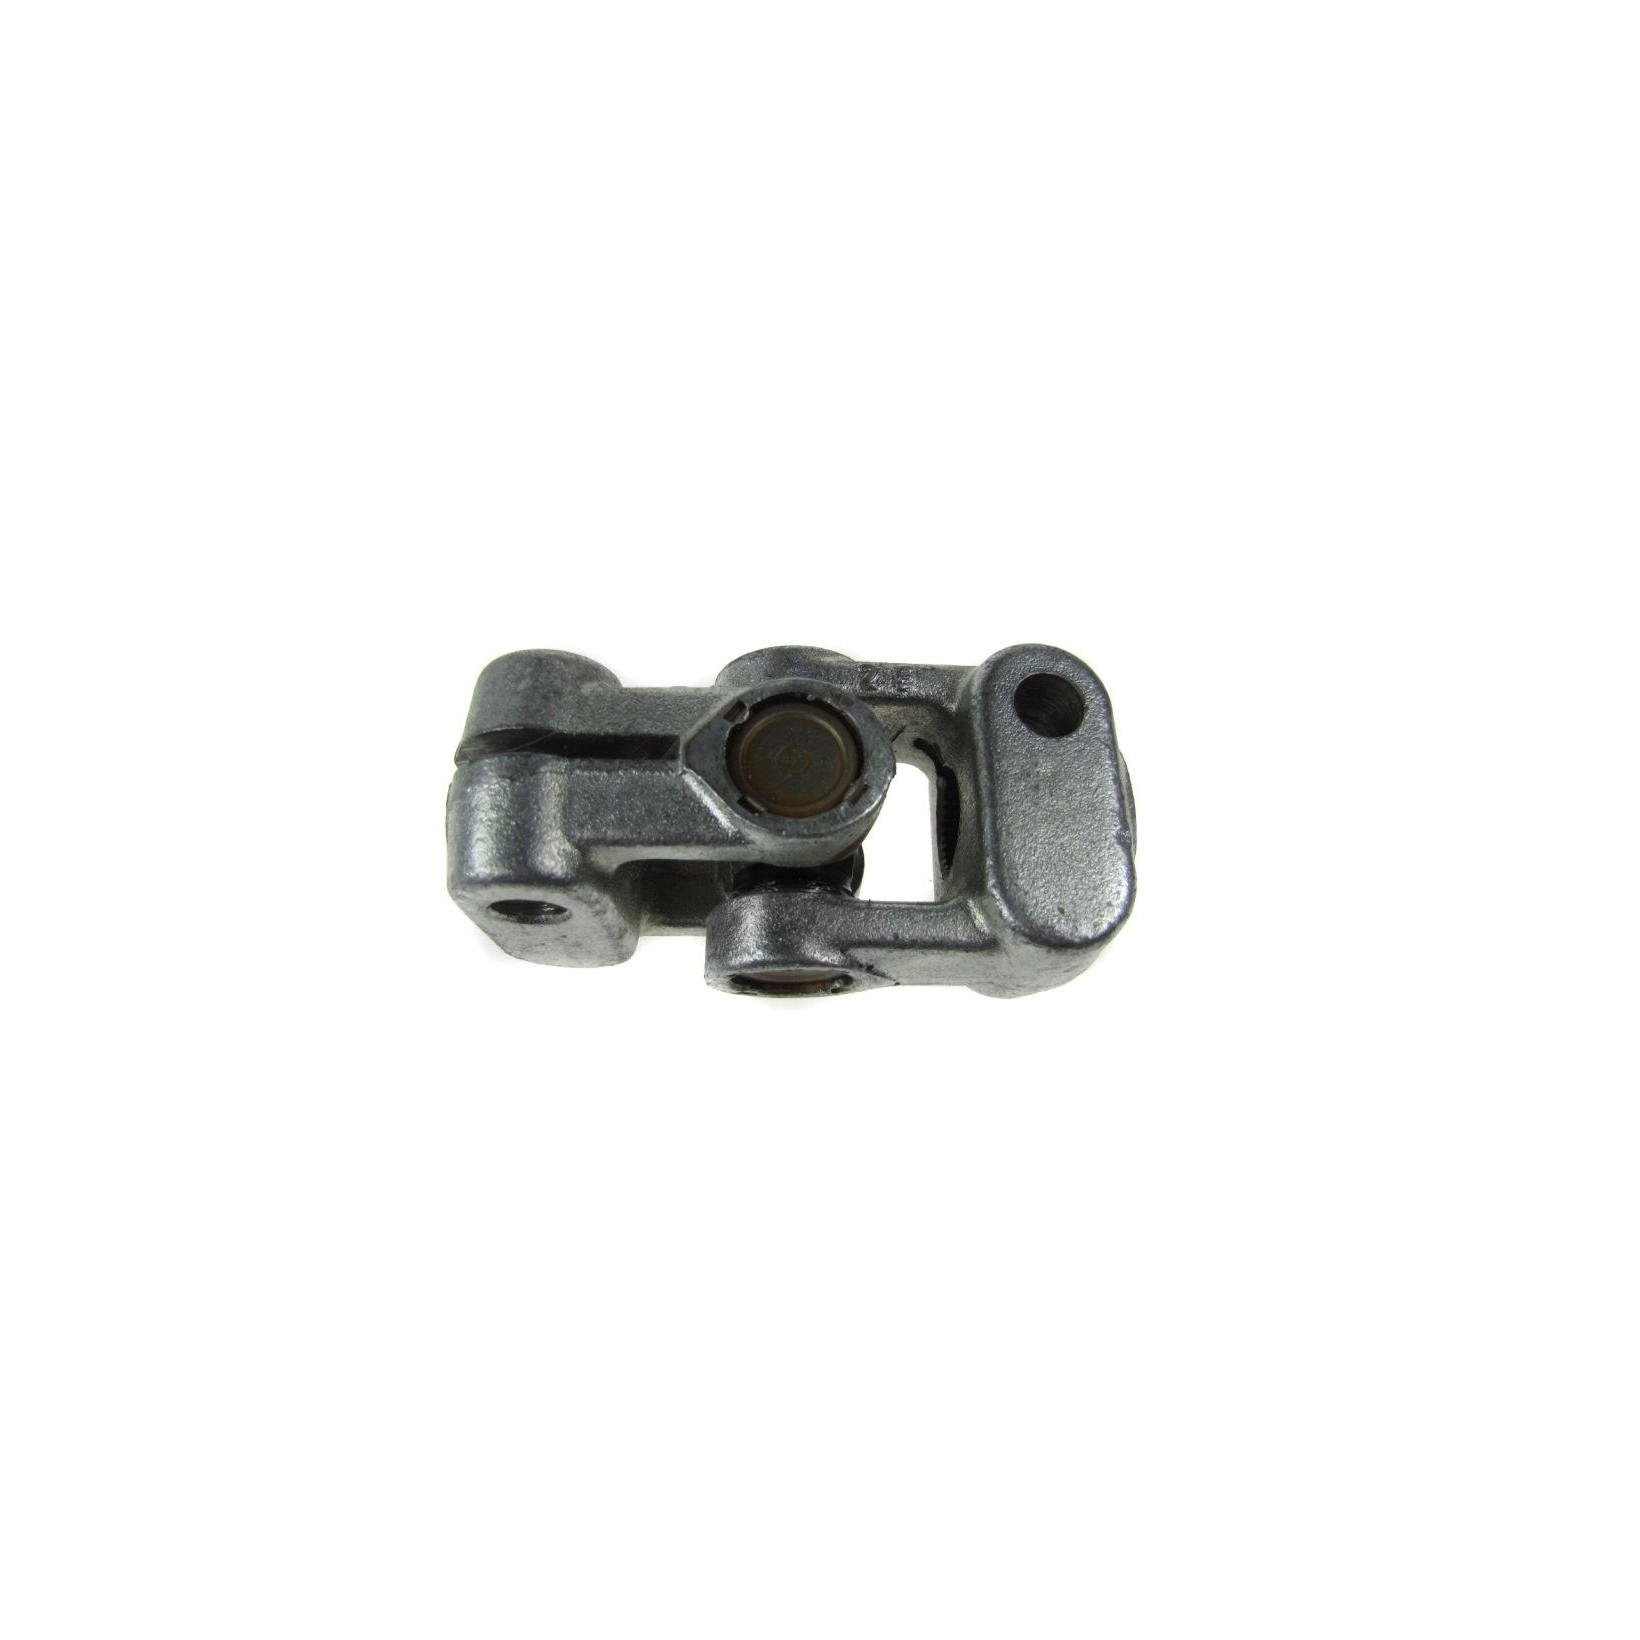 Escort Mk1 Mk2 Heavy Duty Group 4 Short Steering Coupling Universal Joint  Forged